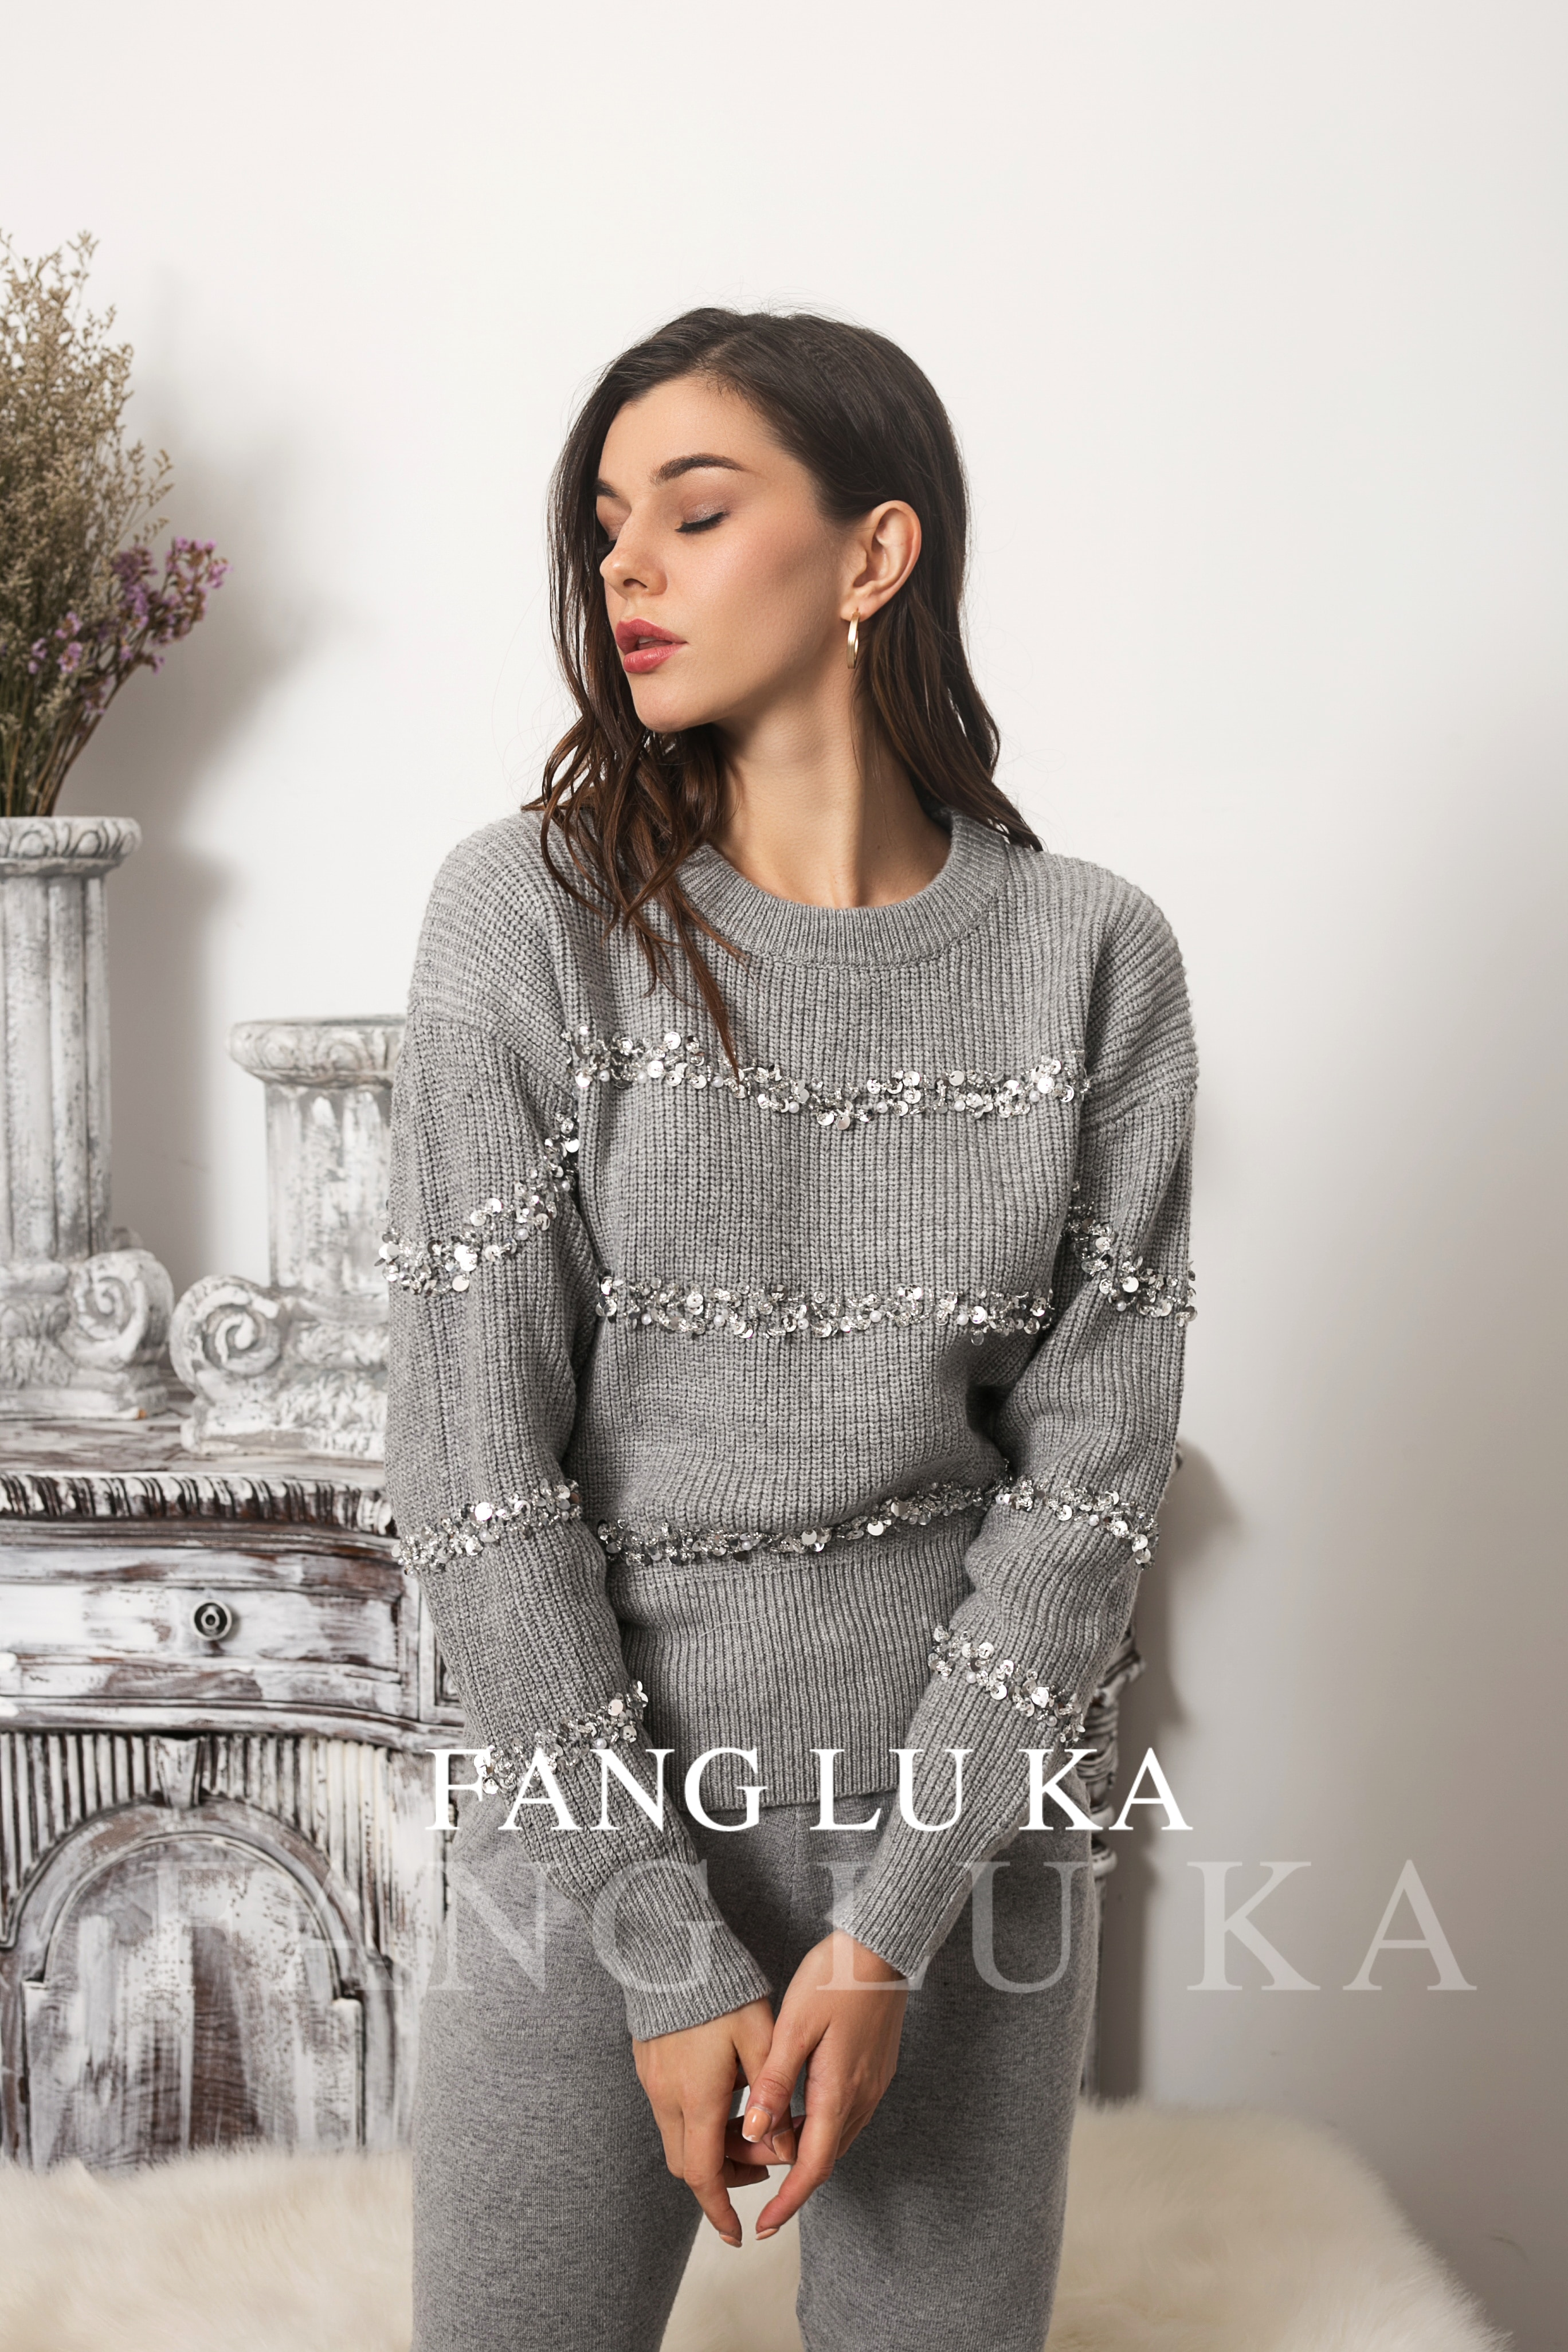 Cashmere knitting suit women's new fashion foreign style Sequin beaded sweater leggings two piece set enlarge